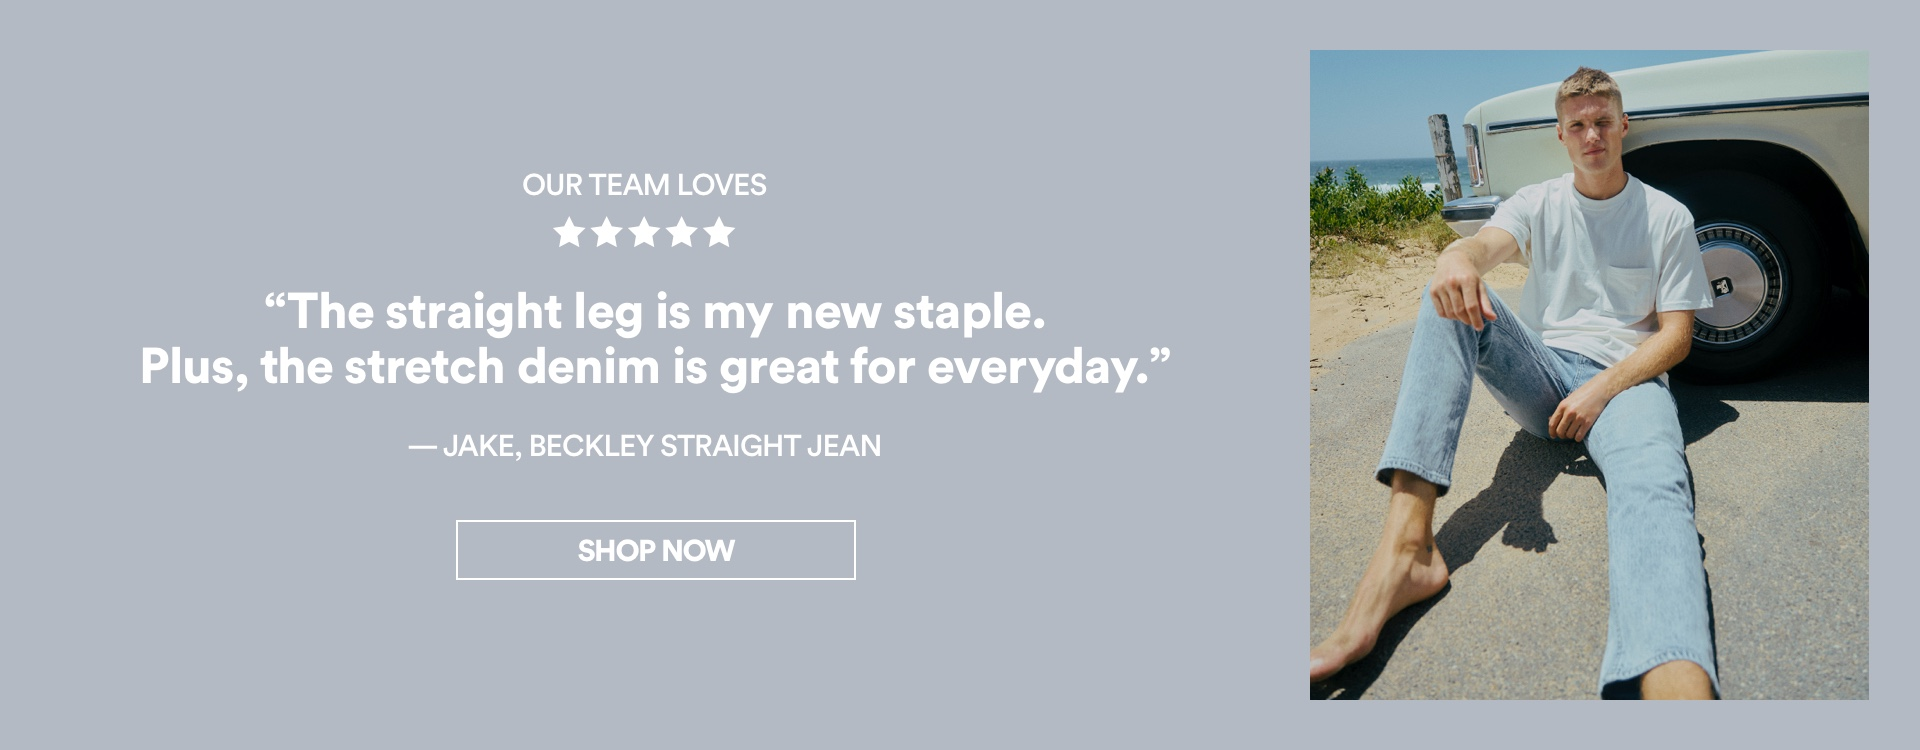 Our Team Loves | The Straight Leg is my new stable. Plus, the stretch denim is great for everyday. - Jake, Beckley Staight Jean. Click to Shop.